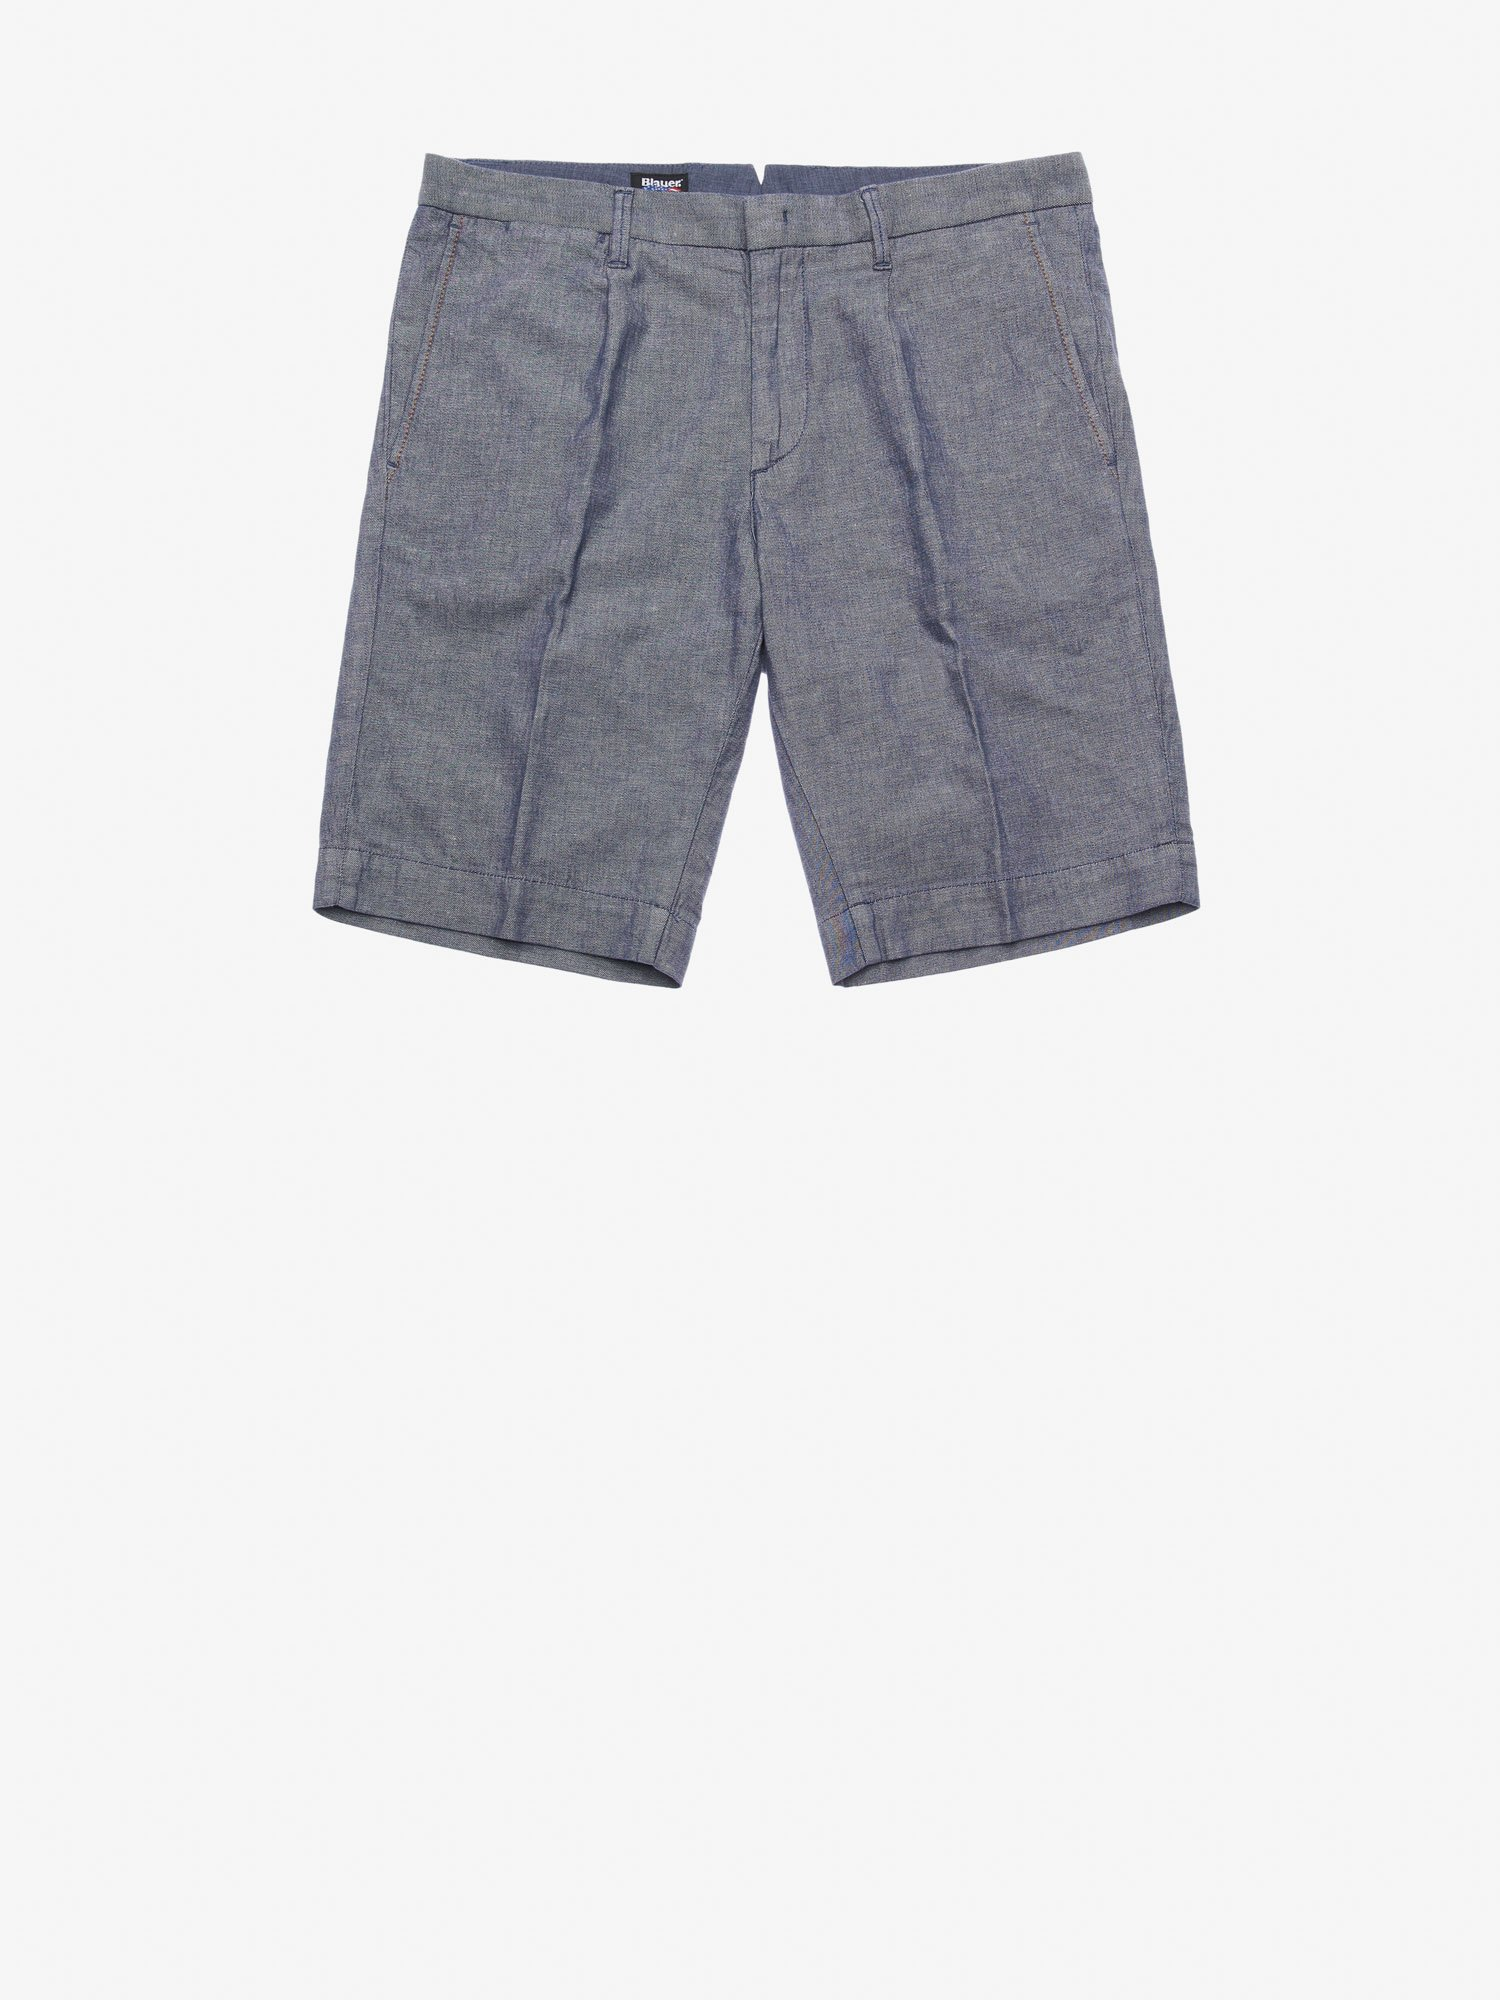 STRETCH COTTON AND LINEN BERMUDA SHORTS - Blauer